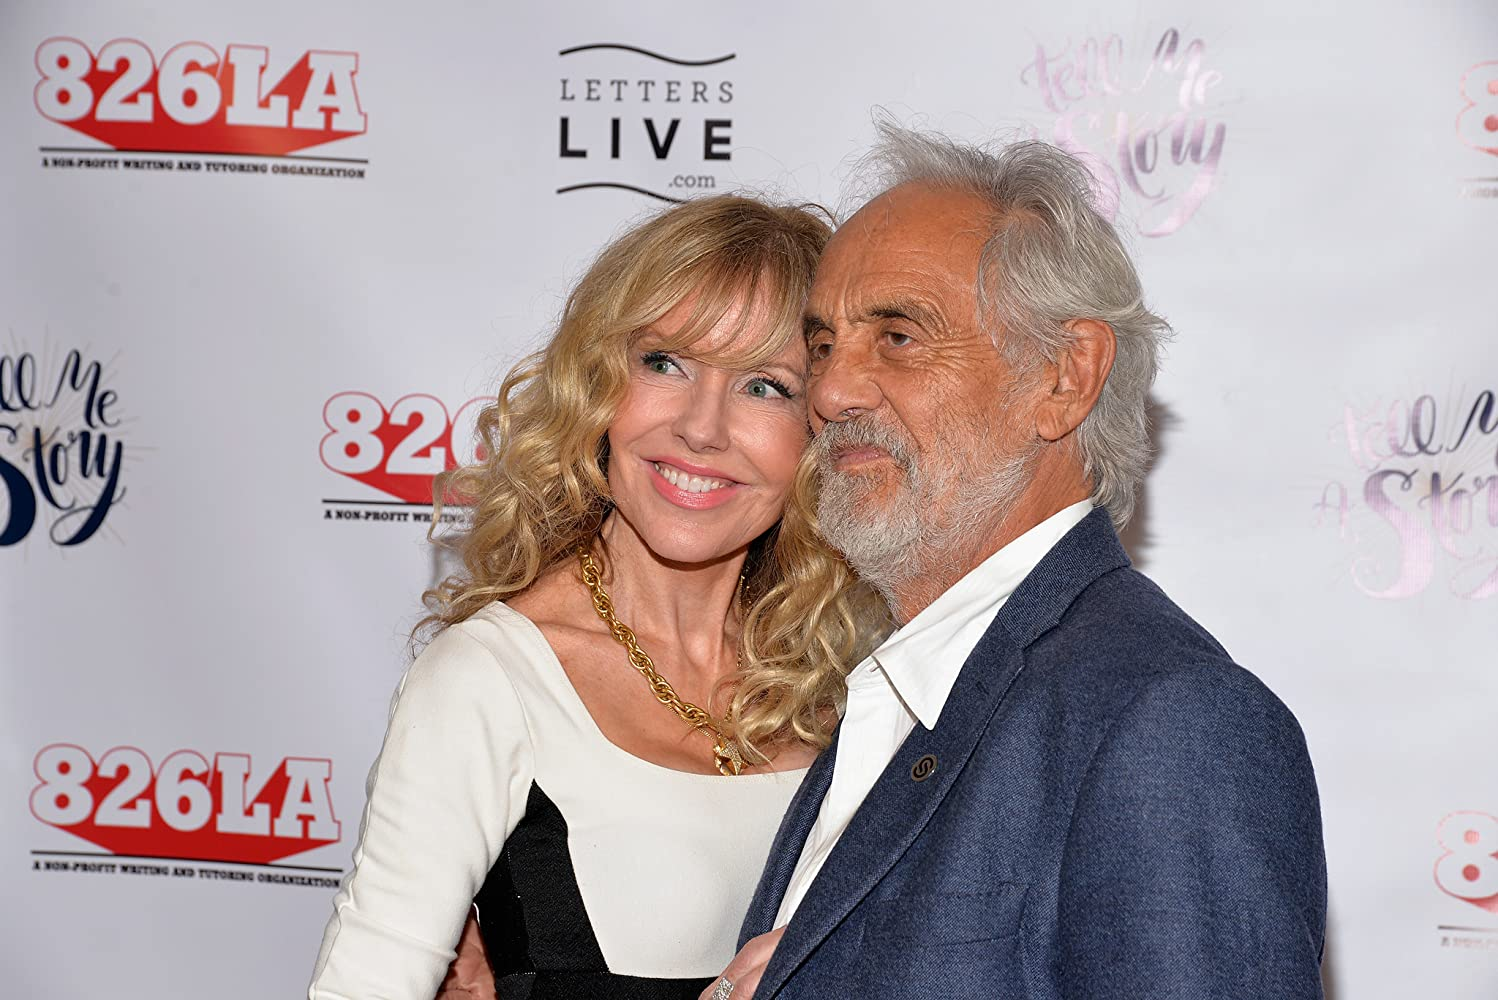 Shelby Chong Shelby Chong new picture